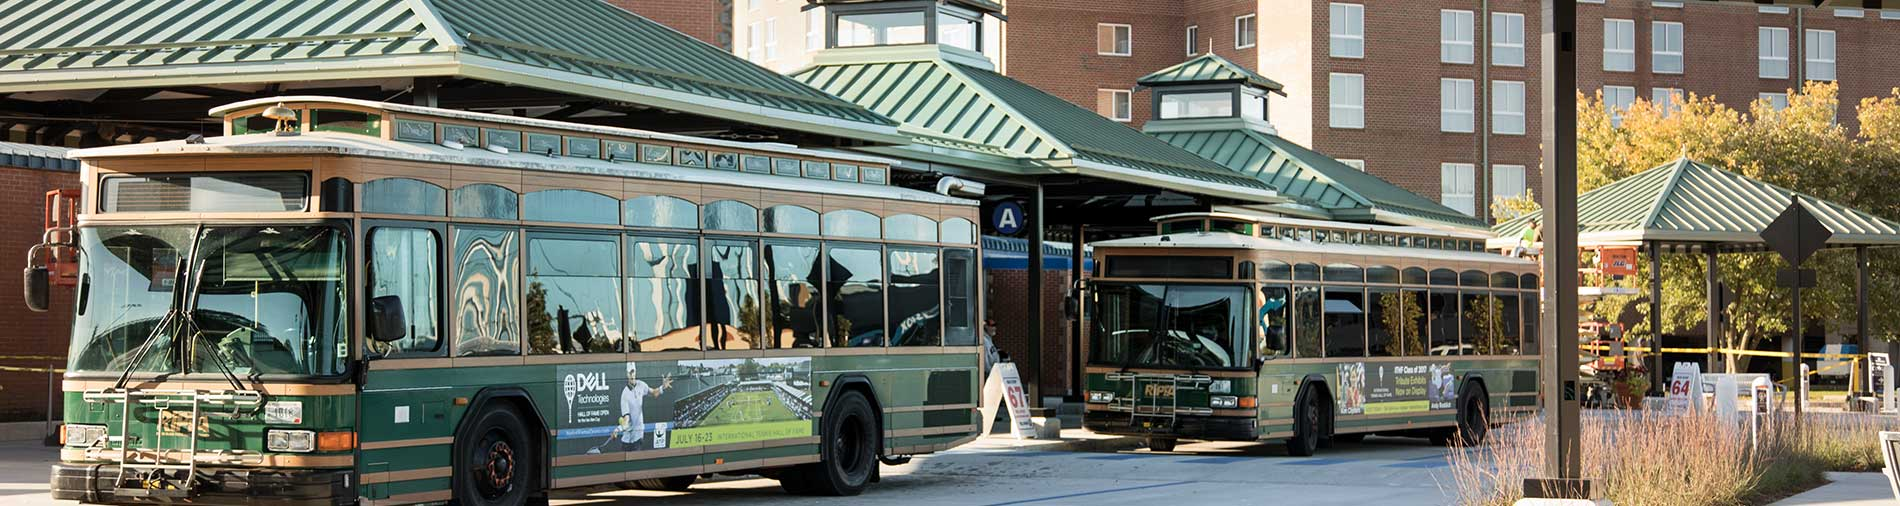 RIPTA transit center, buses and shelters.